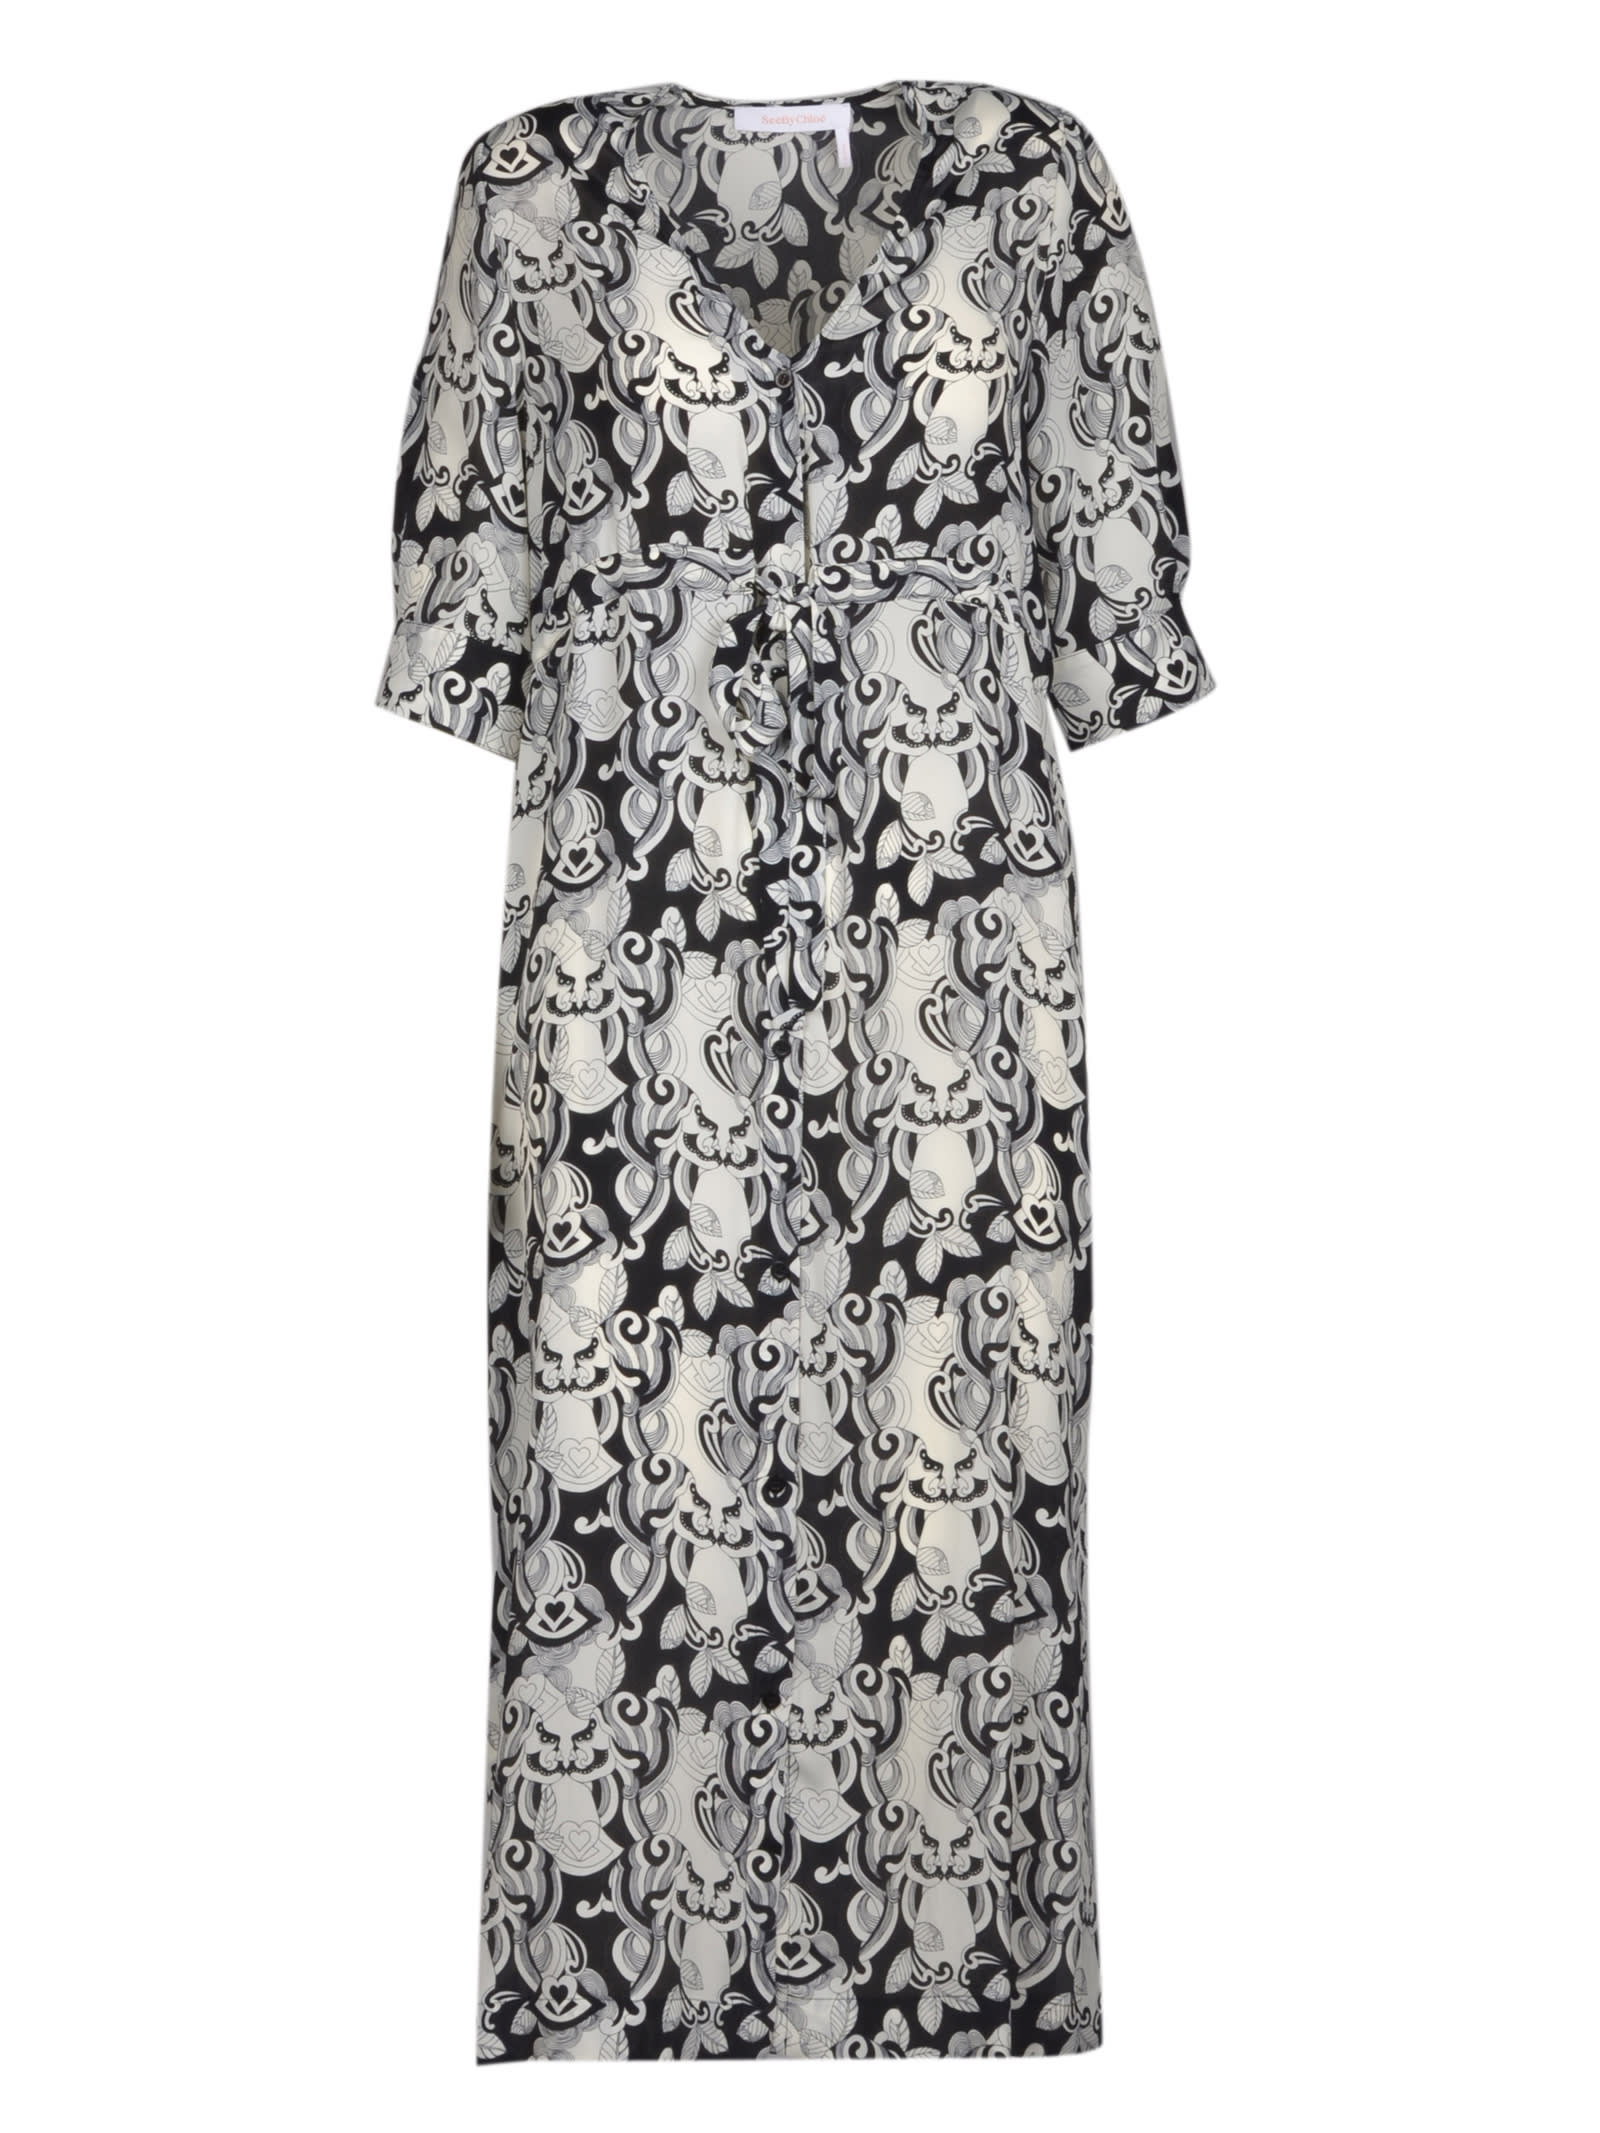 Buy See by Chloé Graphic Print Shirt Dress online, shop See by Chloé with free shipping